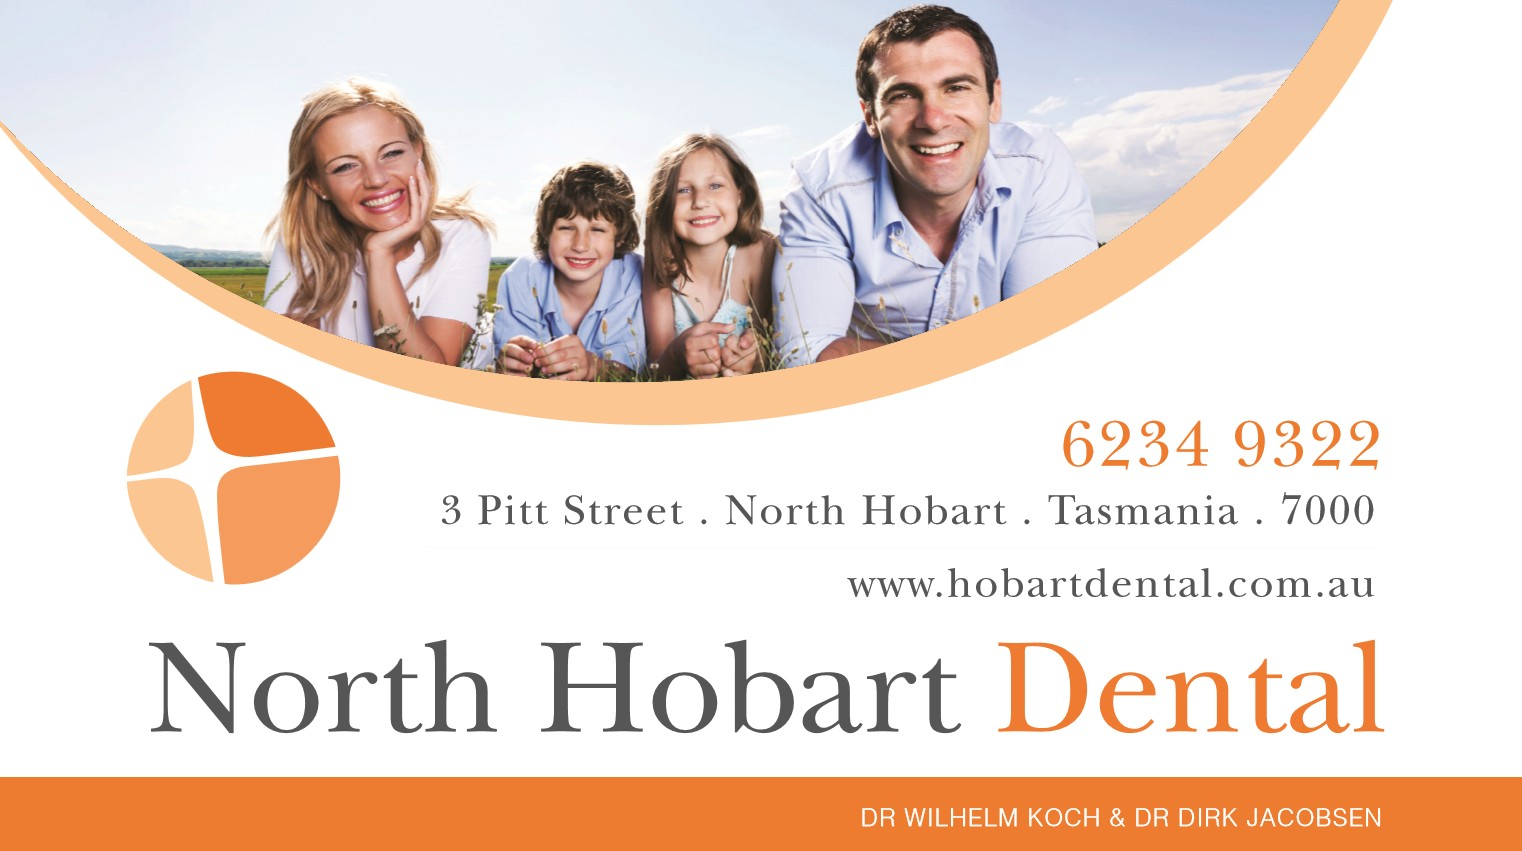 North Hobart Dental North Hobart